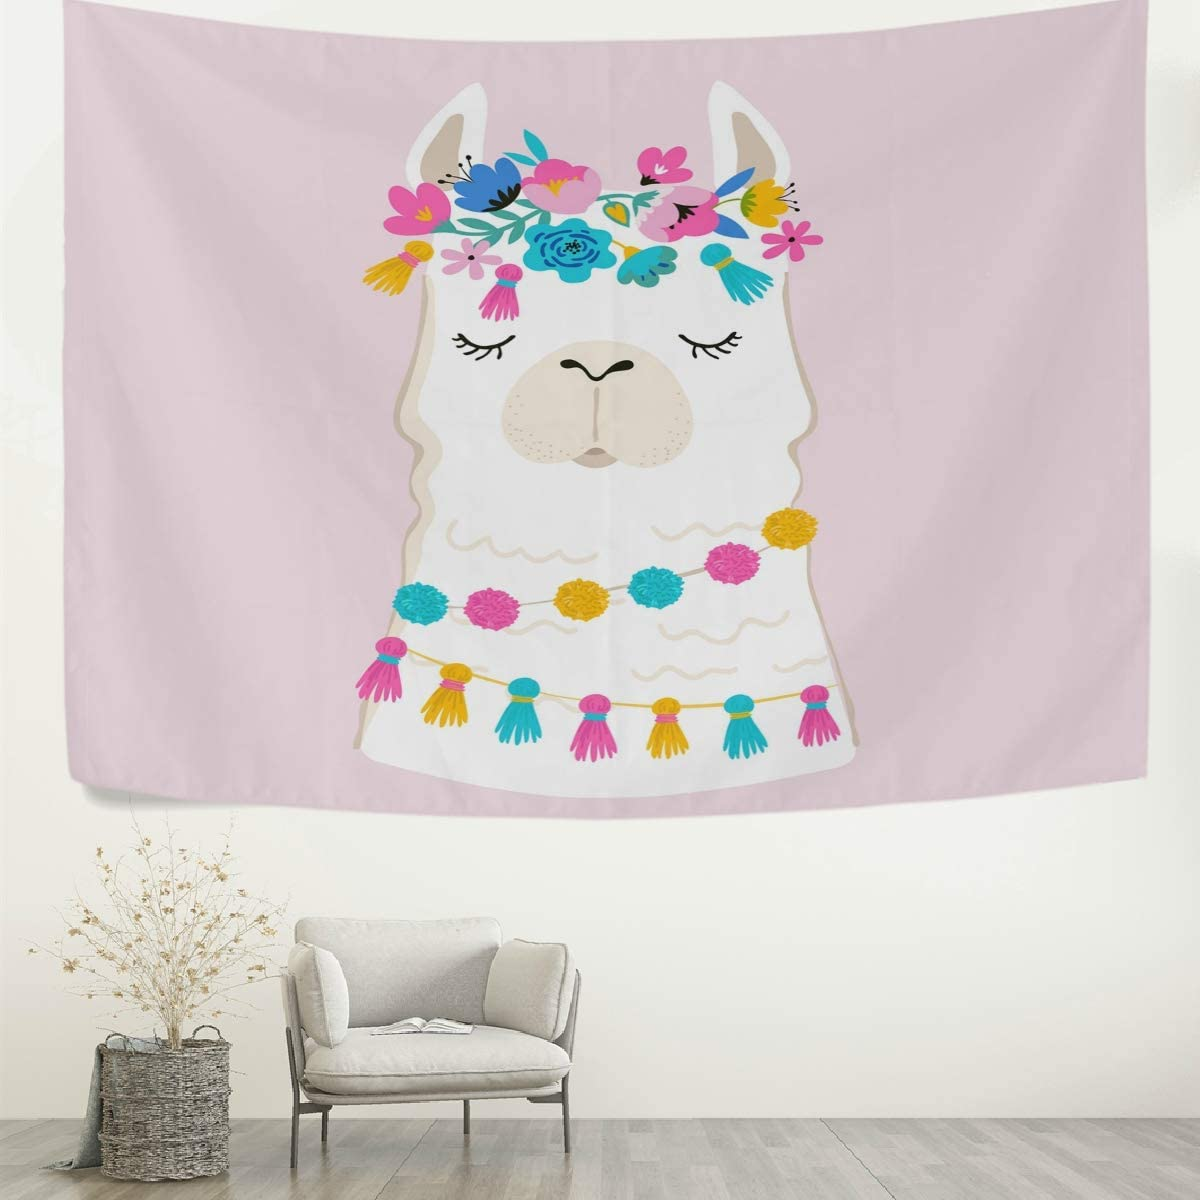 AGONA Cute Animal Llama Alpaca Floral Wall Tapestry Tapestry Wall Hanging Decorative Tapestries Wall Art Wall Blanket Bedding Tapestry for Bedroom Living Room Dorm Home Decor 90 x60